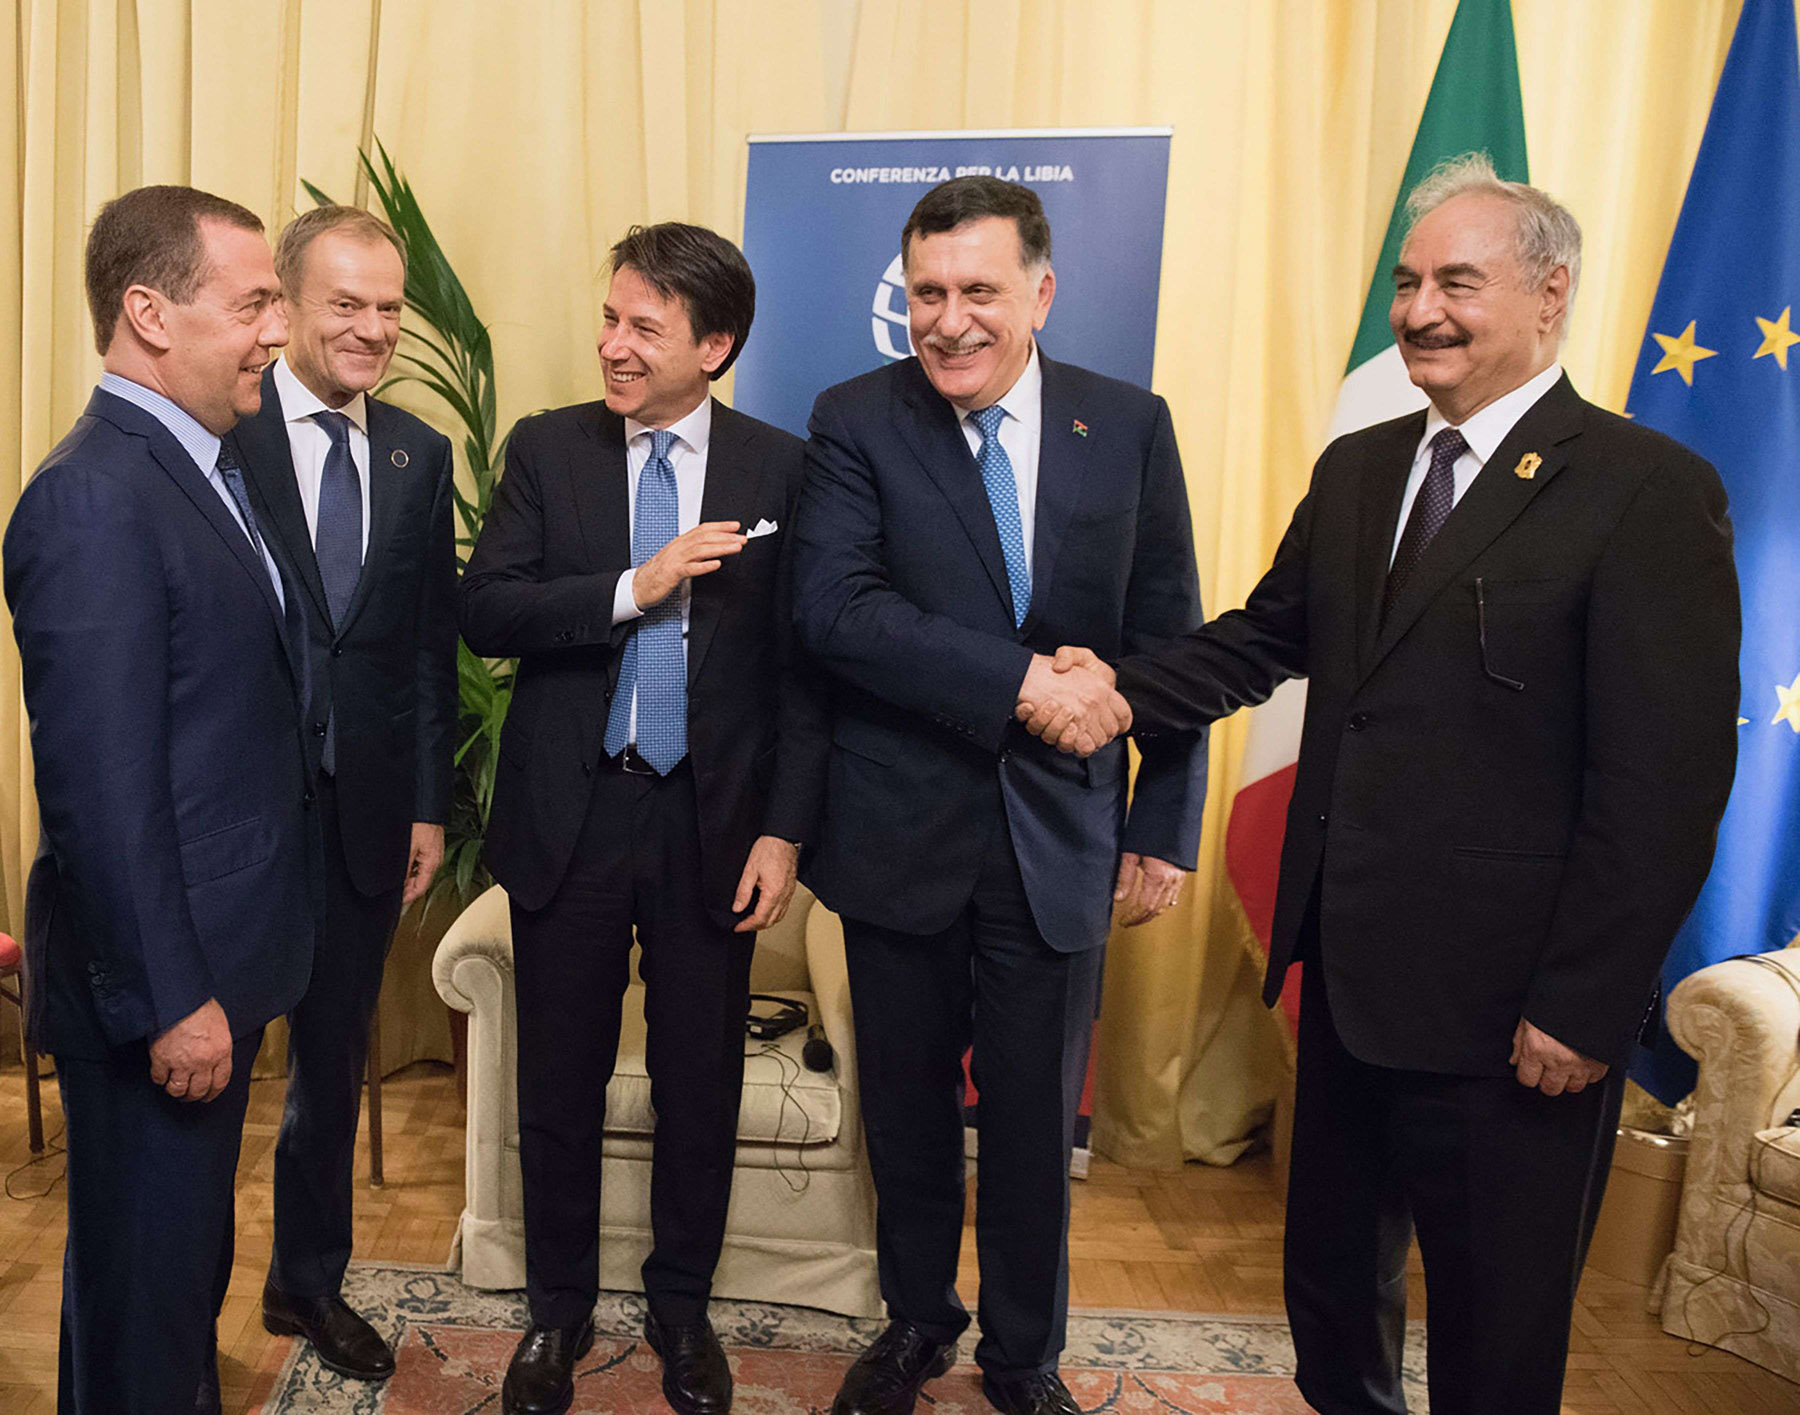 (L-R) Russian Prime Minister Dmitry Medvedev, EU President Donald Tusk, Italian Prime Minister Giuseppe Conte, Chairman of the Presidential Council of Libya Fayez al-Sarraj and Libyan Field-Marshal Khalifa Haftar meet on the sidelines of the Palermo conference, on November 13. (Italian Prime Minister's Press Office)